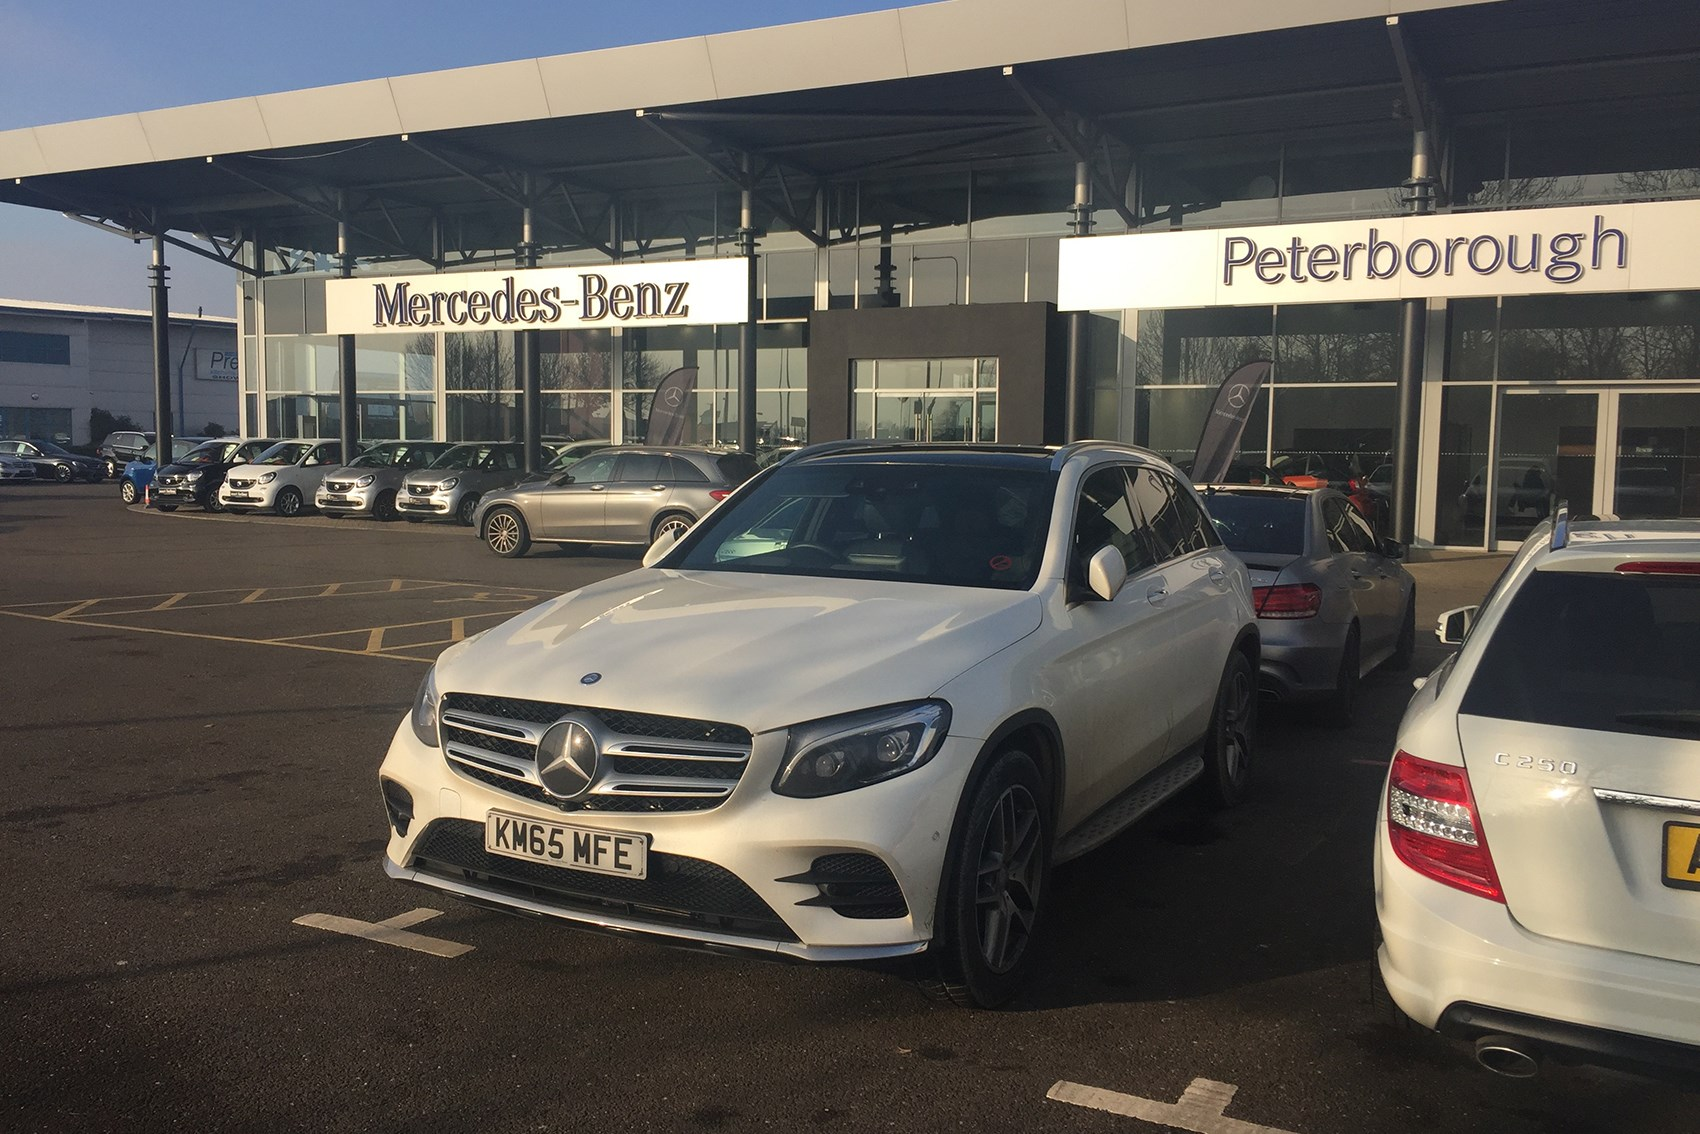 Mercedes-Benz GLC 250d at Peterborough dealers